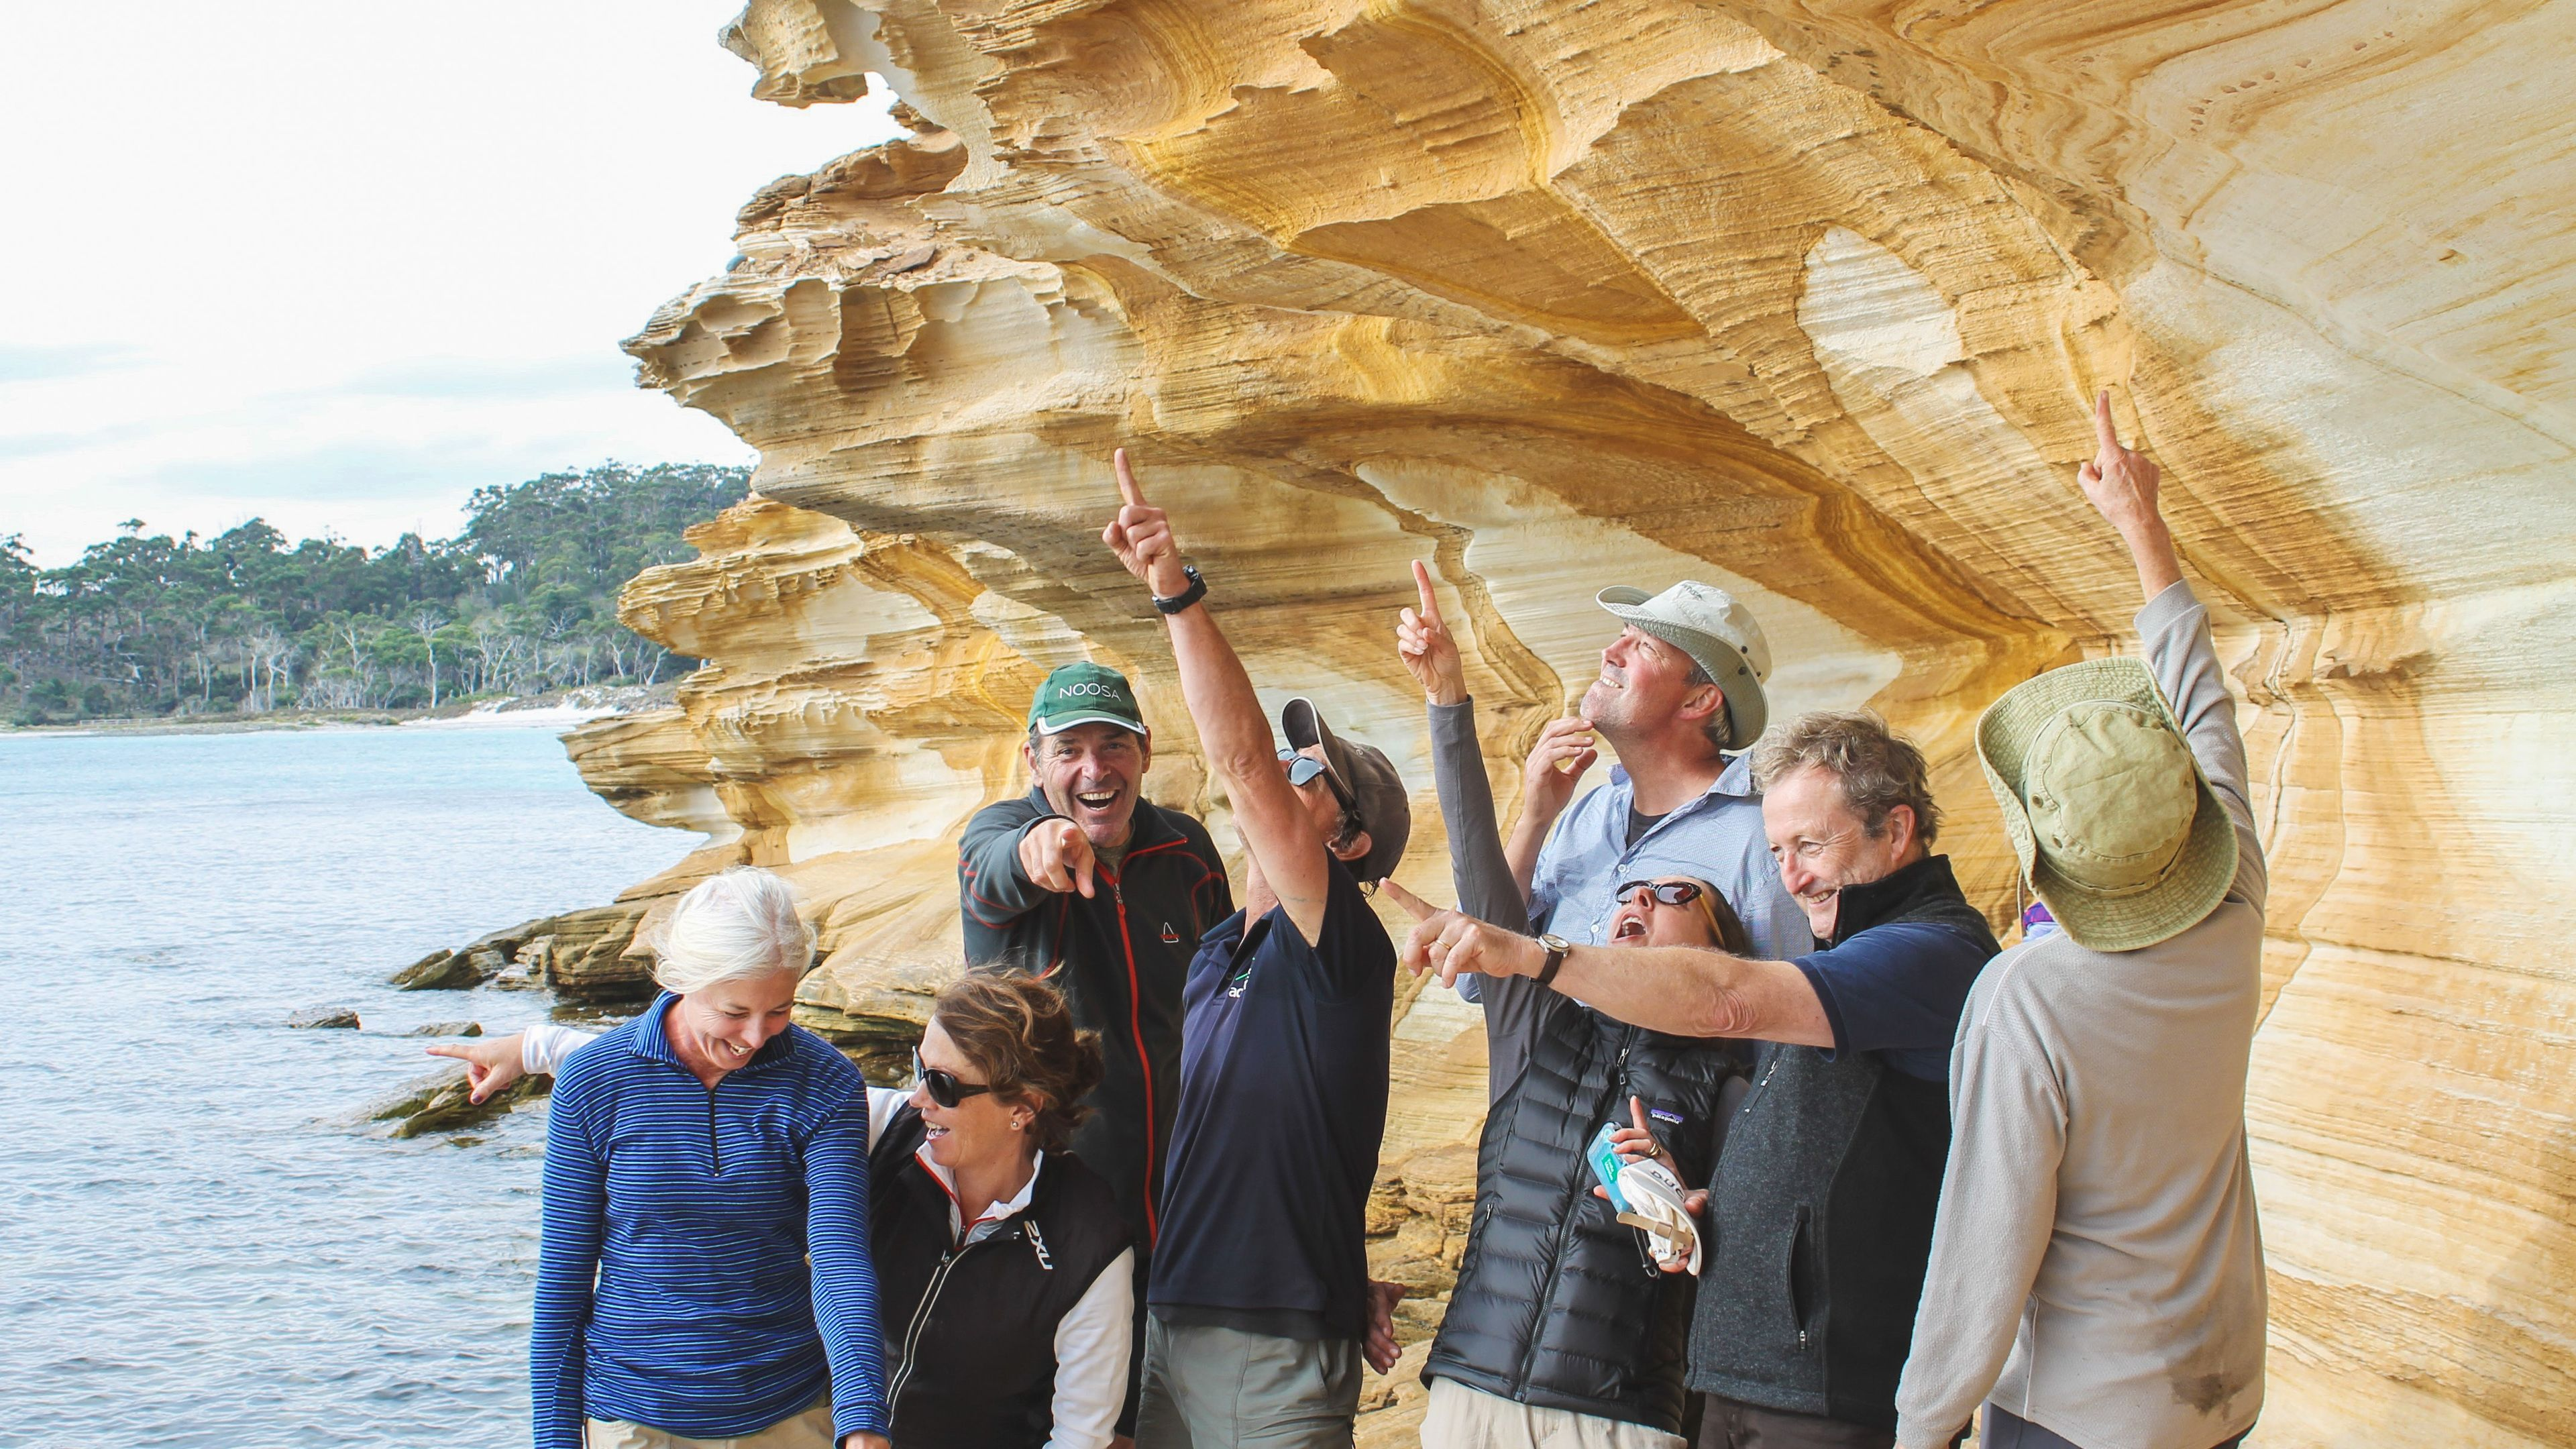 Group of tourists observing rock formations on Maria Island.